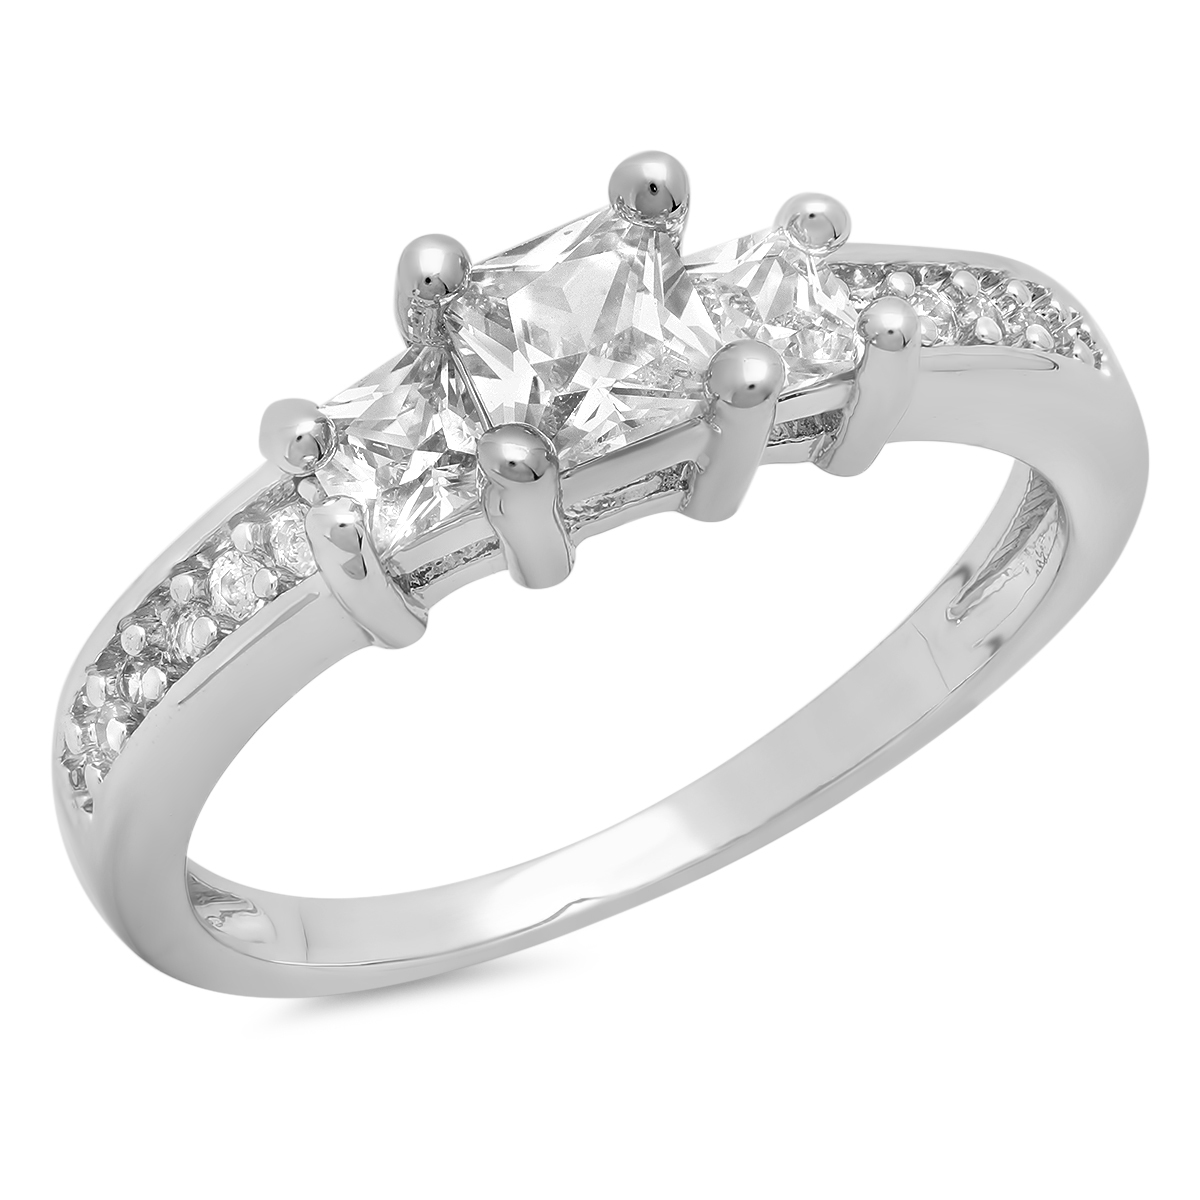 White Gold Plated Cubic Zirconia 3-Stone Engagement Ring